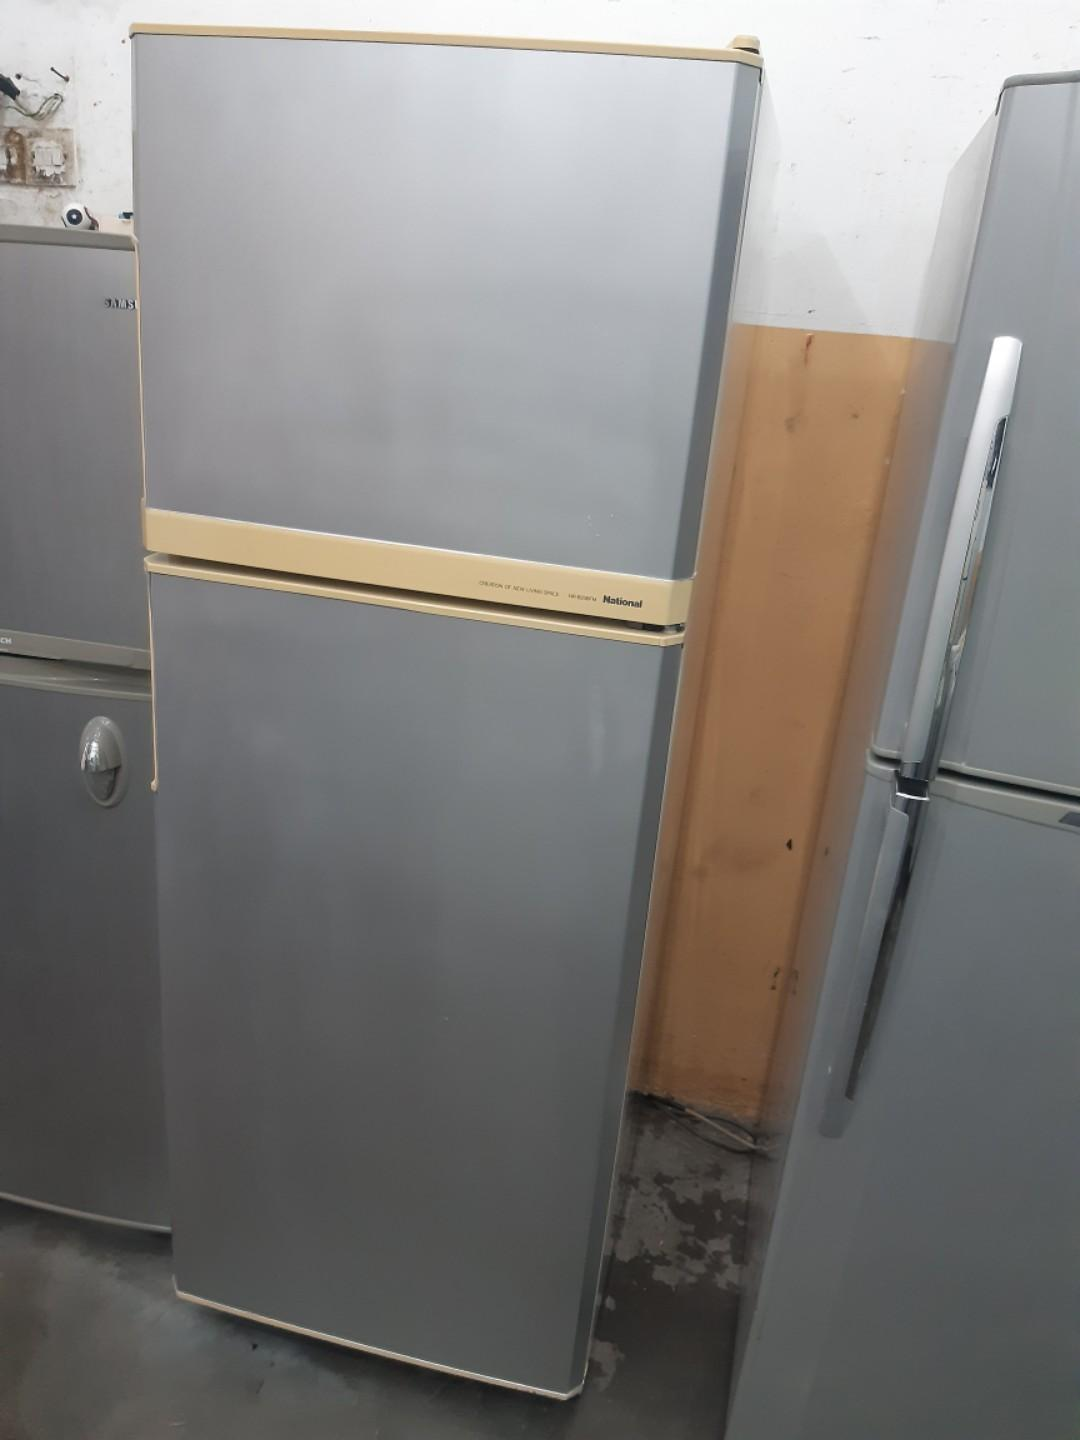 National fridge peti sejuk good condition